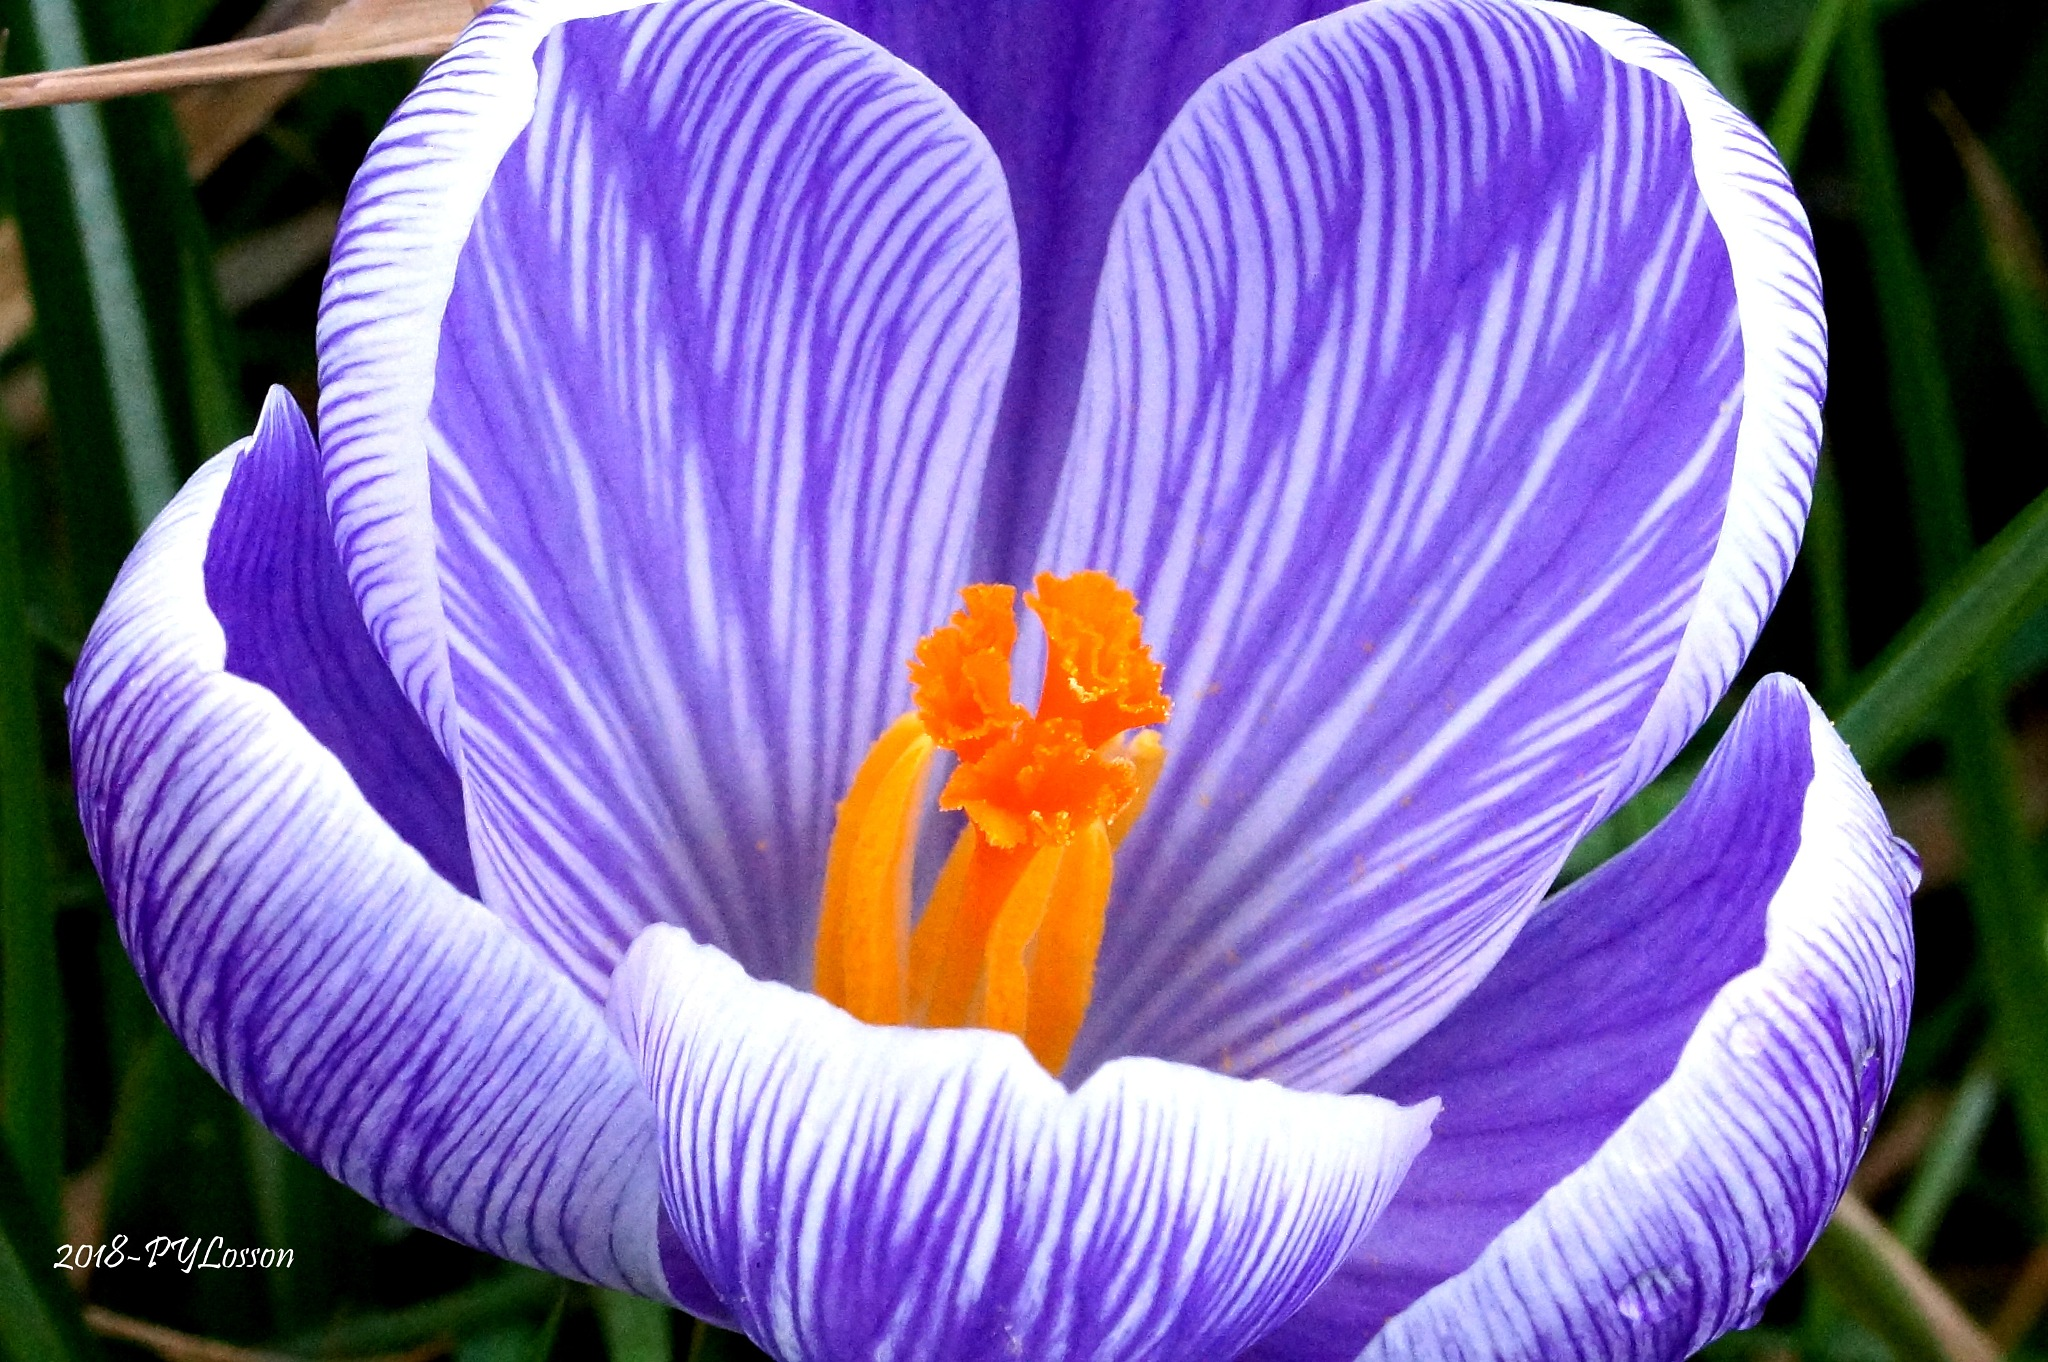 crocus by Pierre-Yves Losson